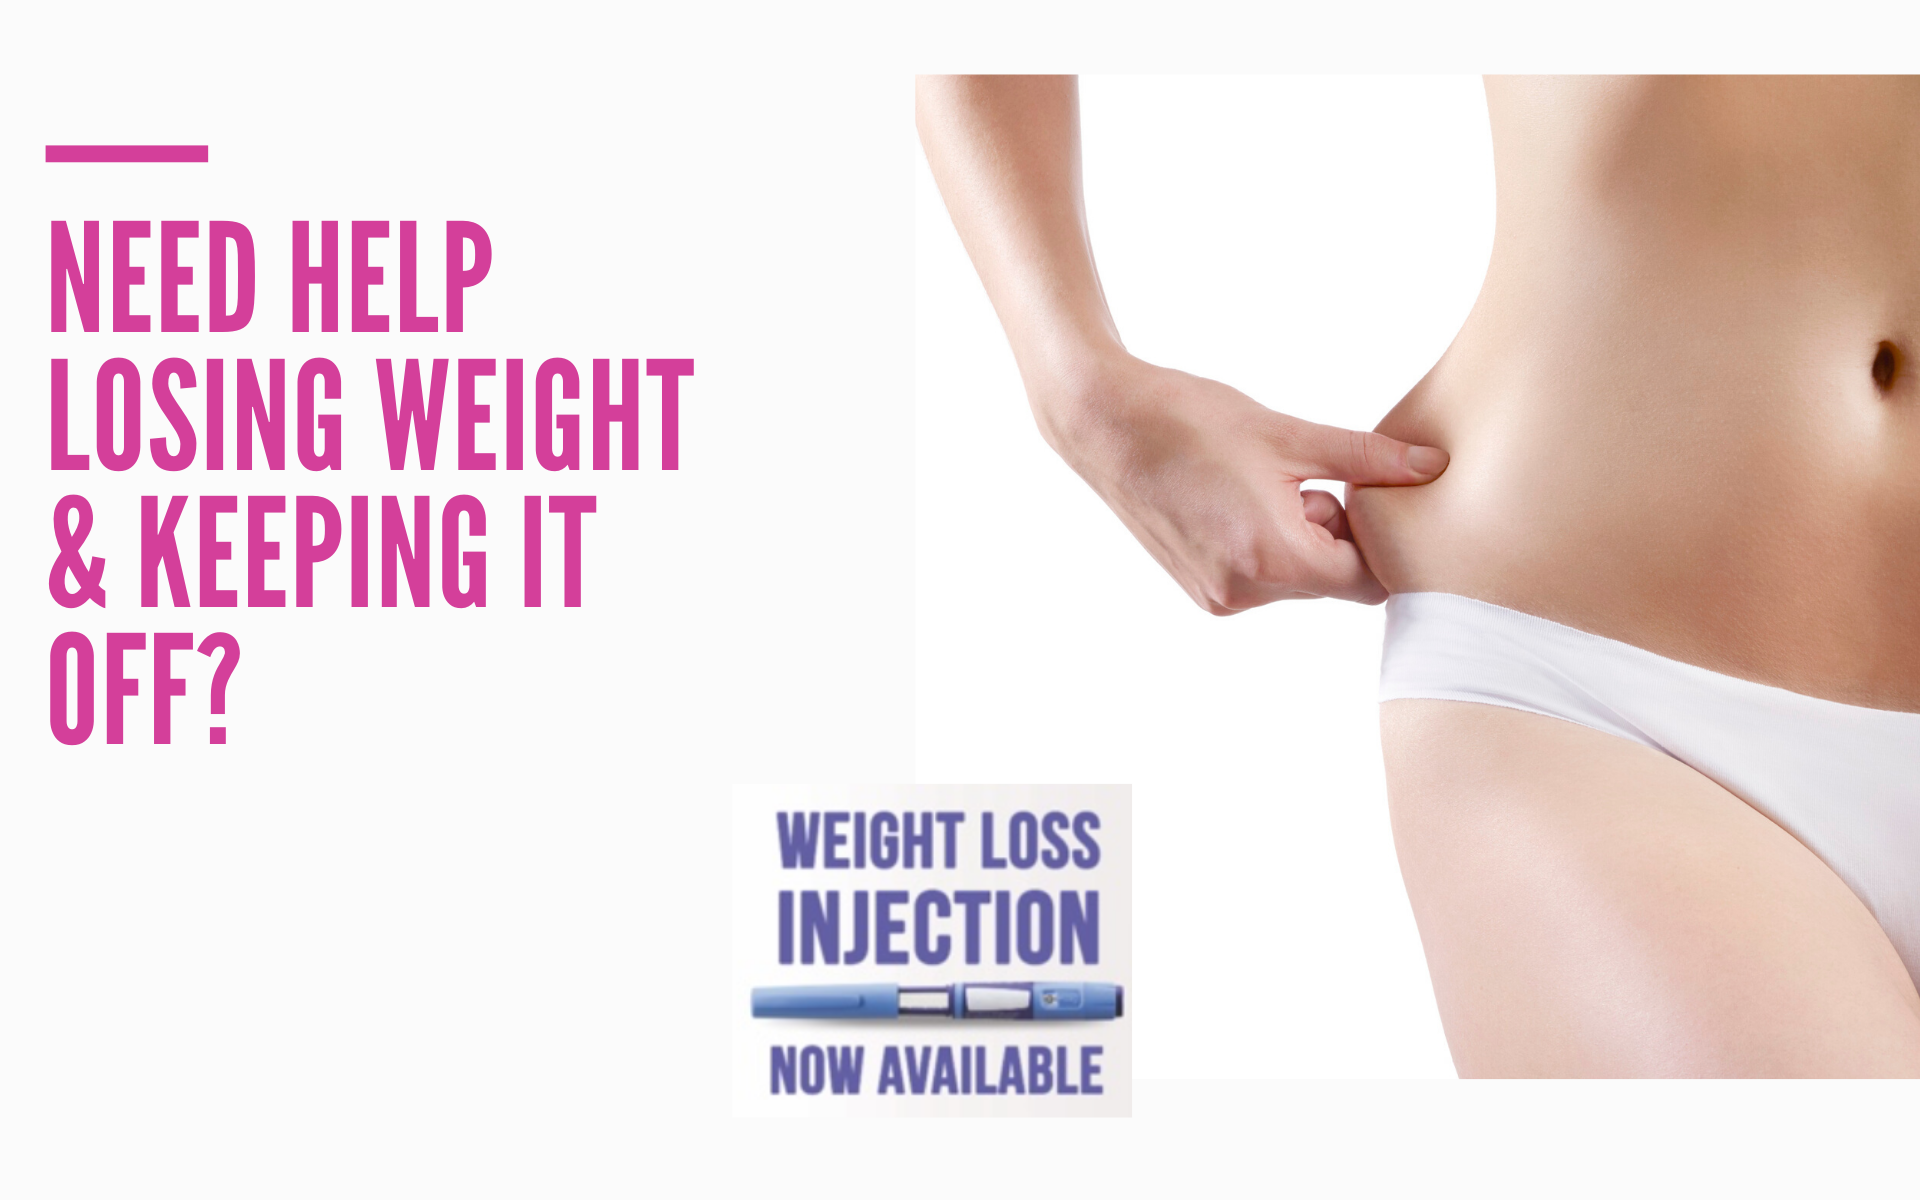 SAXENDA - LONDON - SLIMMING WEIGHT LOSS JAB